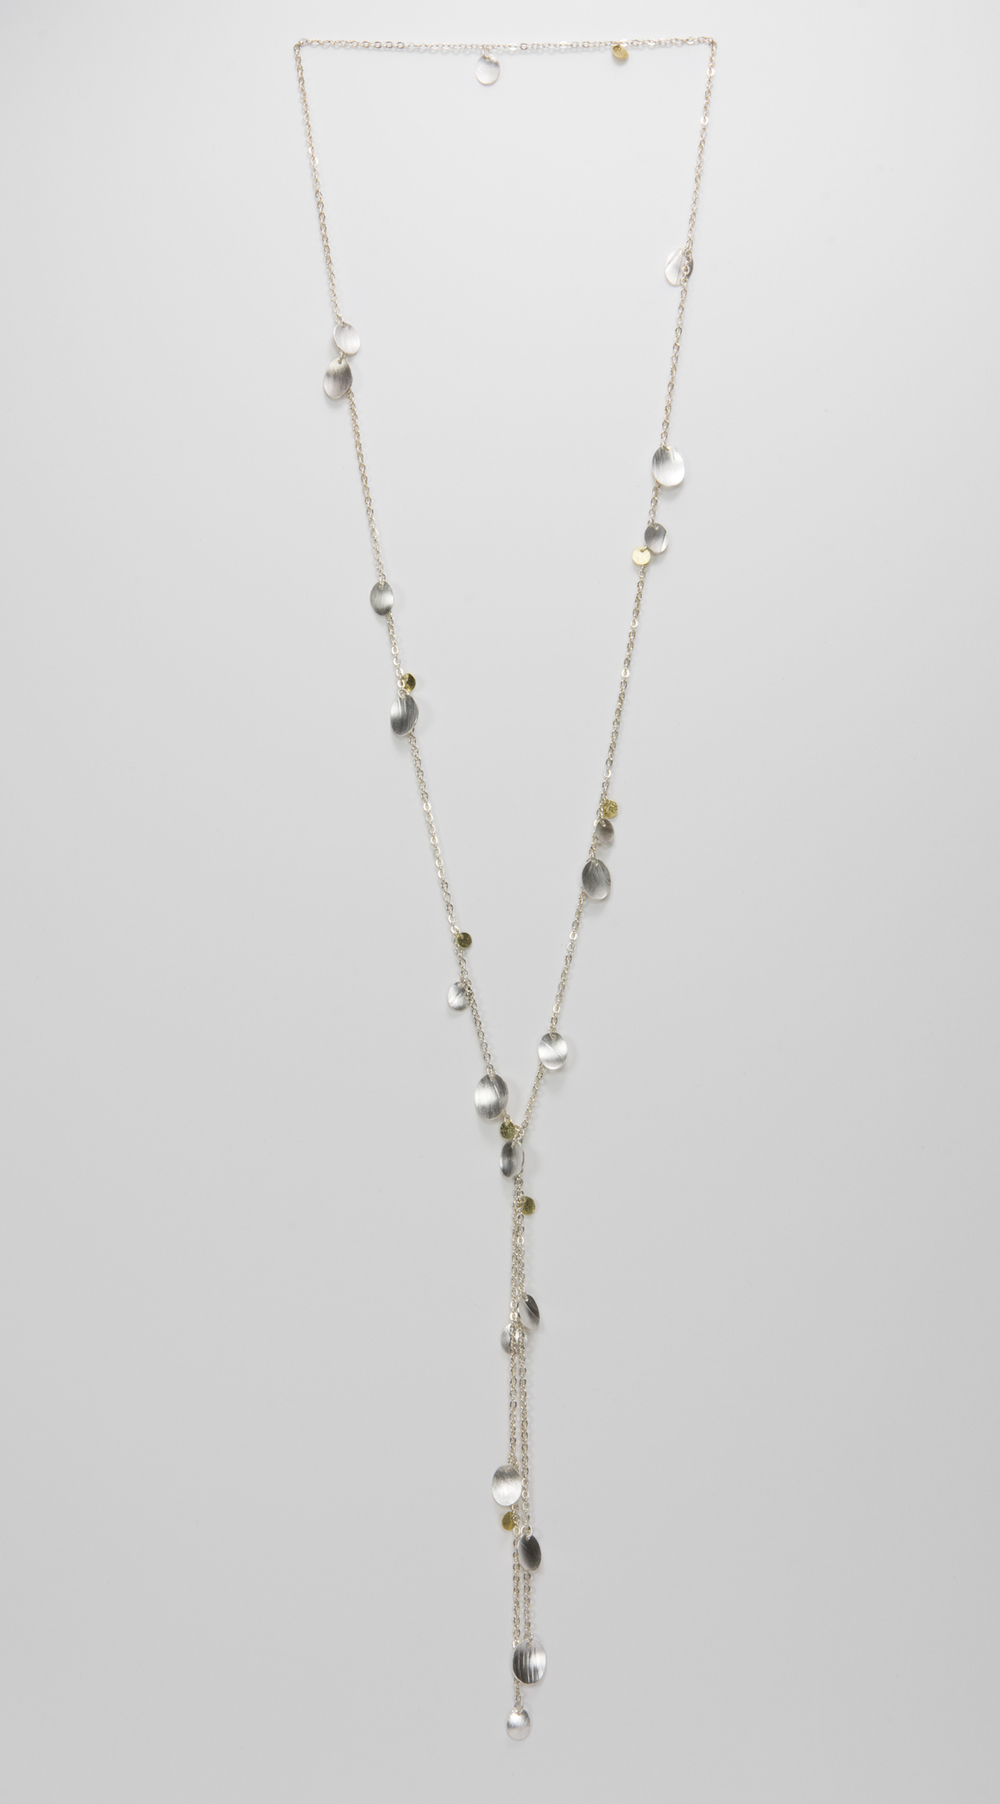 long Y feather necklace - sterling silver and 18ky gold - 950.00